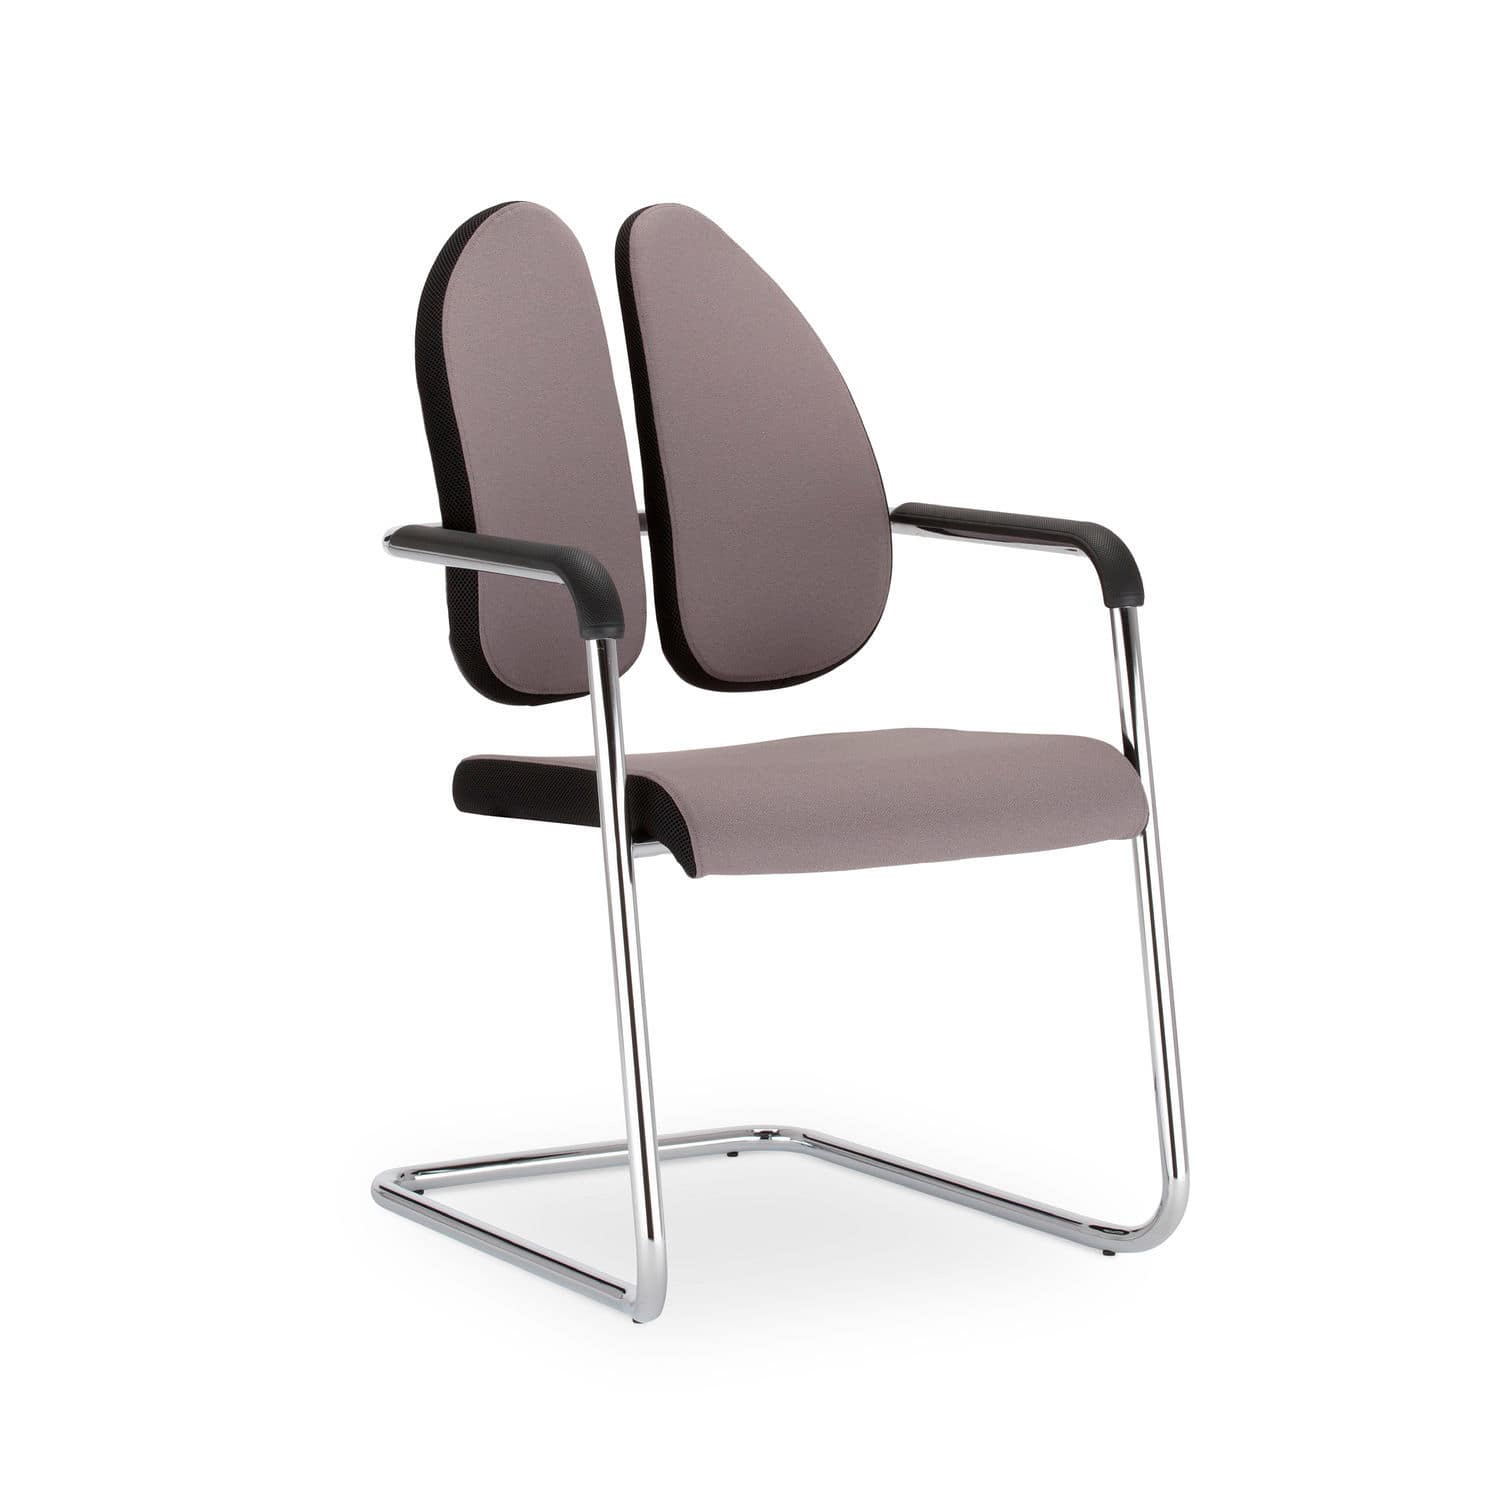 xenium swivel chair heavy duty lift chairs bariatric contemporary conference upholstered with armrests stackable